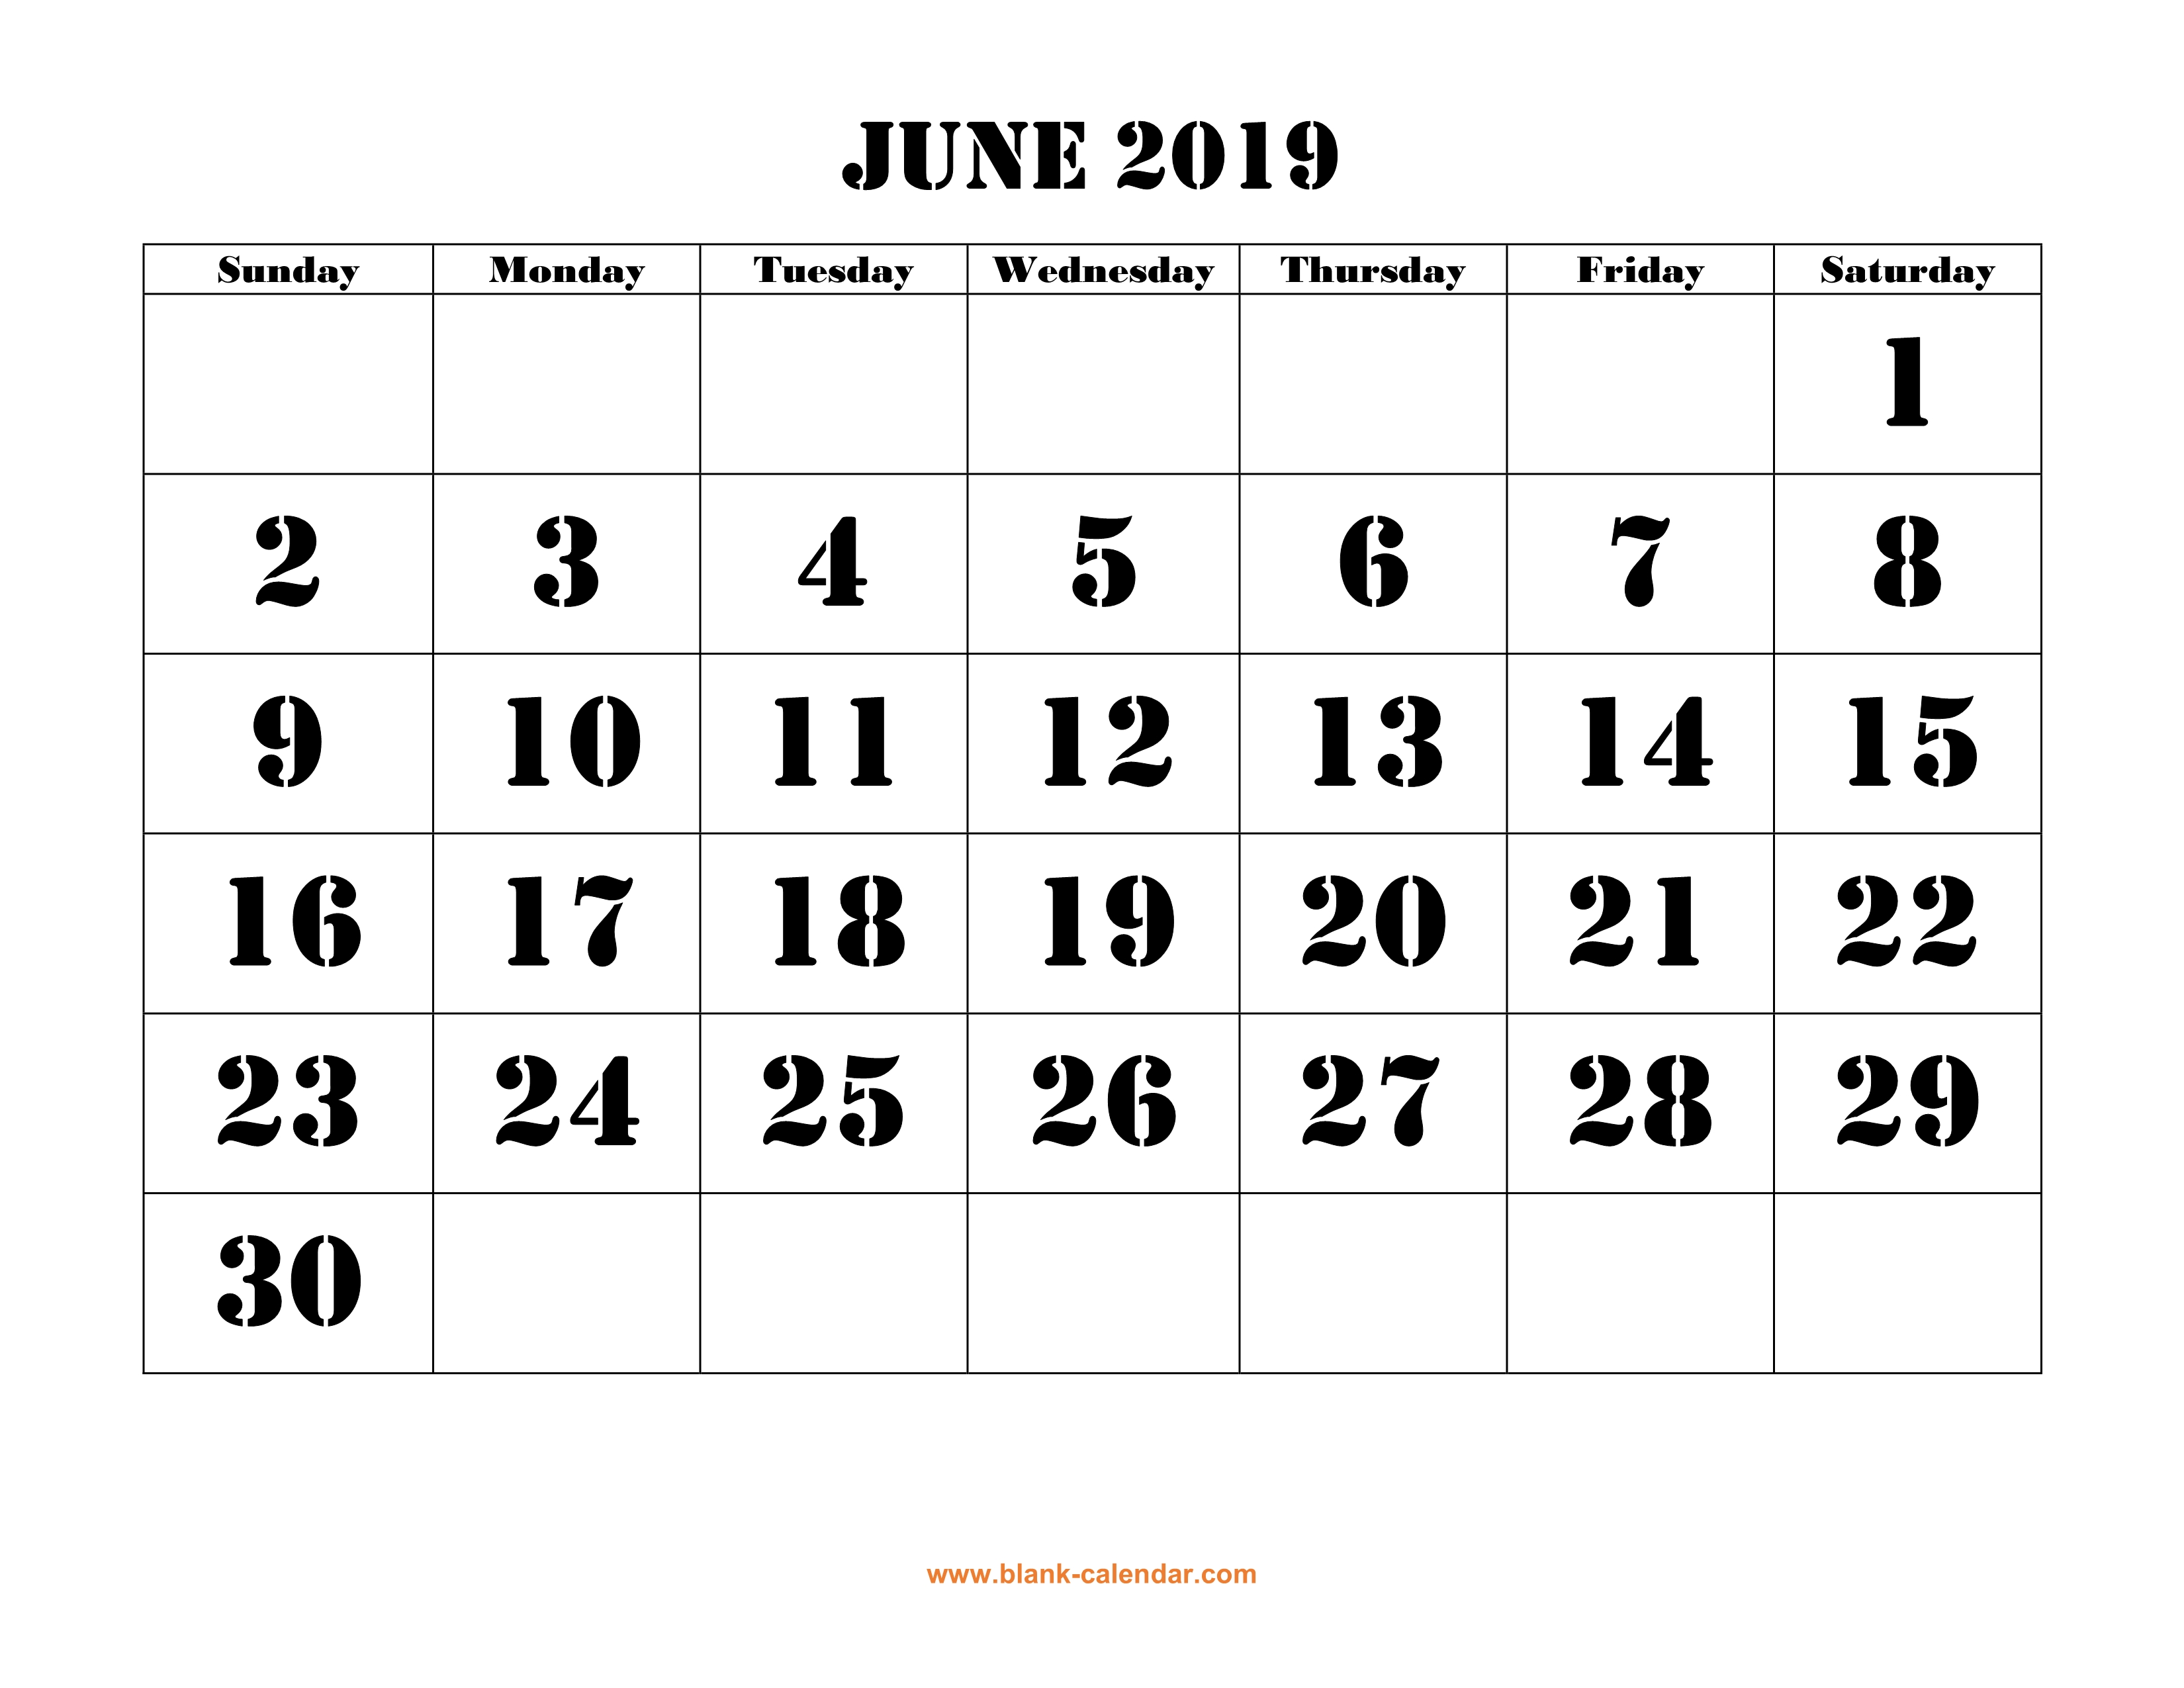 2019 June Calendar.Free Download Printable June 2019 Calendar Large Font Design